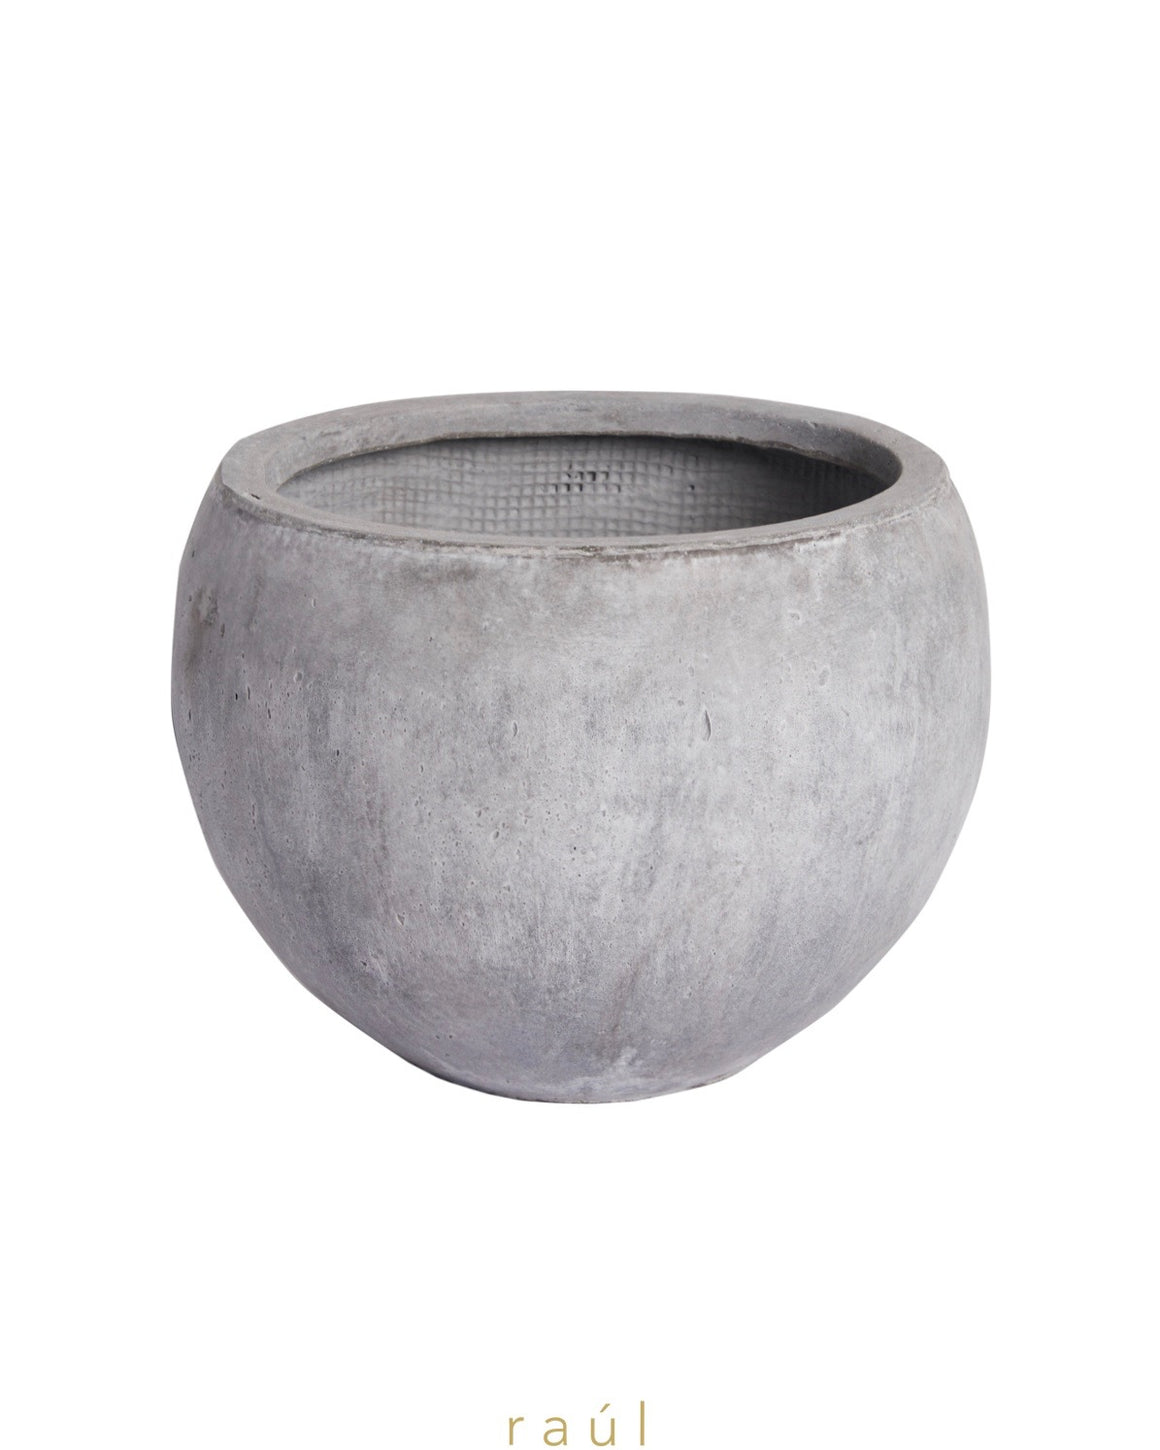 Light Fiber Clay Pot Small